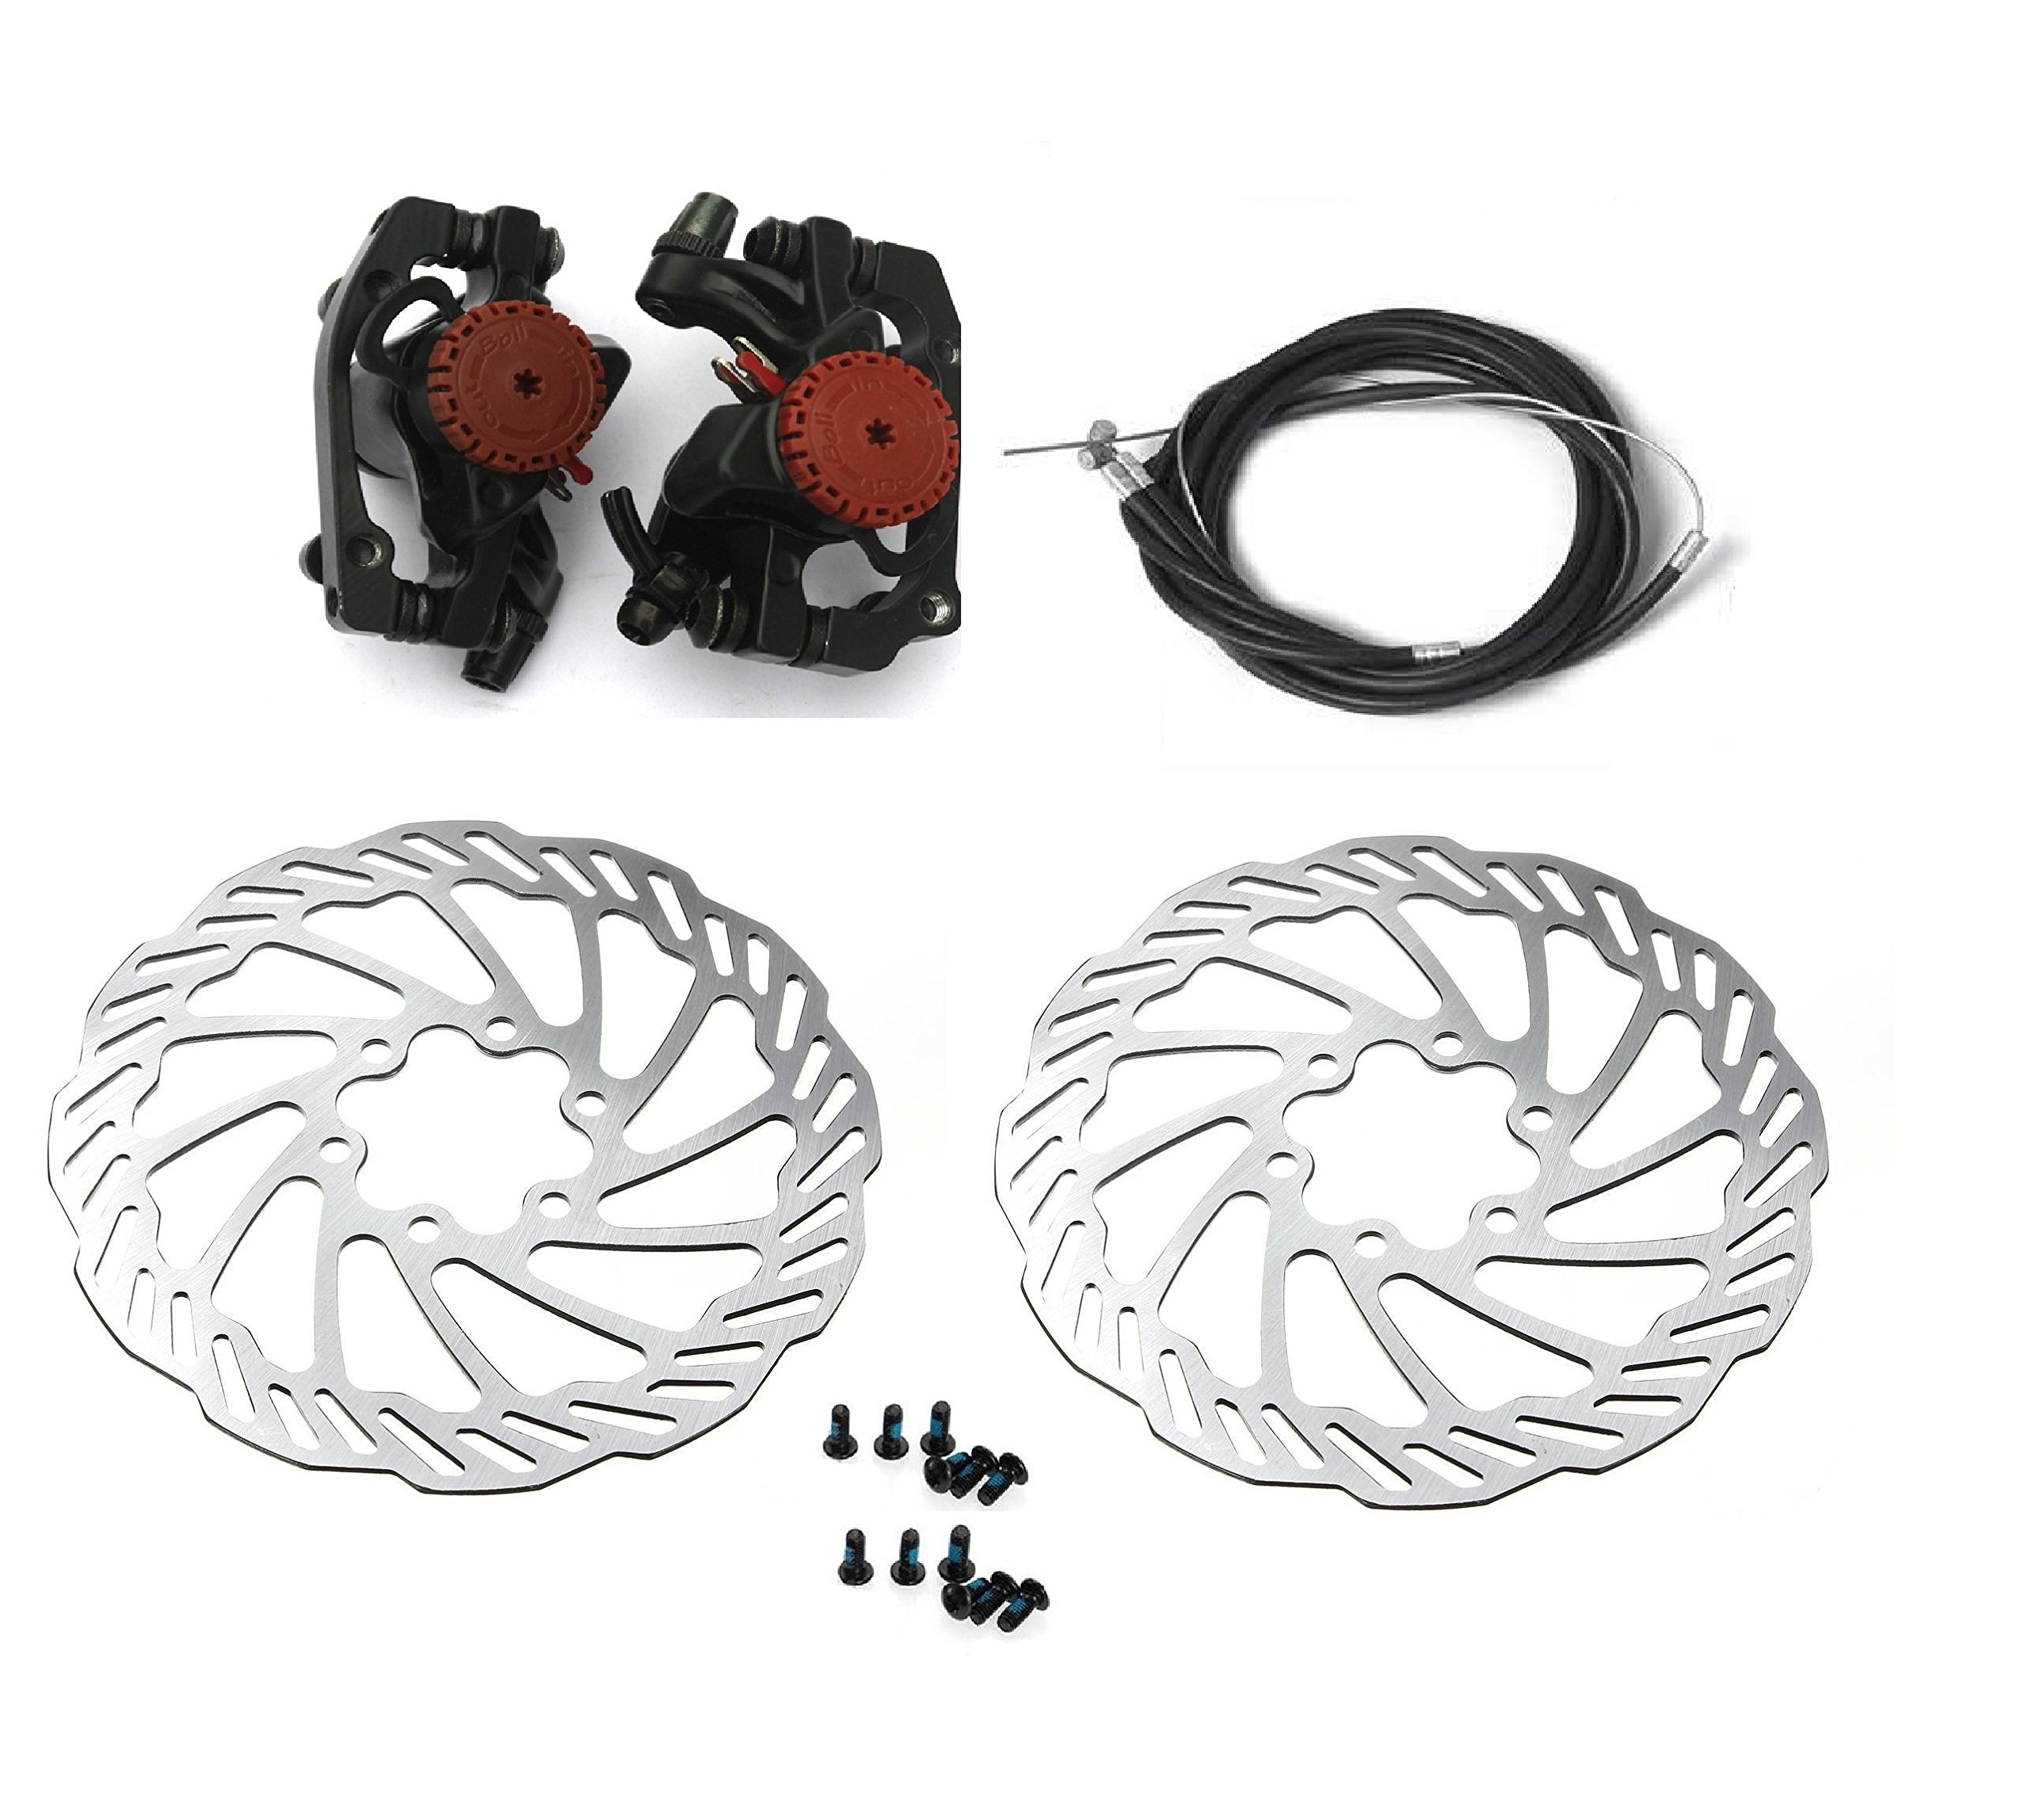 BlueSunshine MTB BB5 Mechanical Disc Brake Front and Rear 160mm whit Bolts and Cable